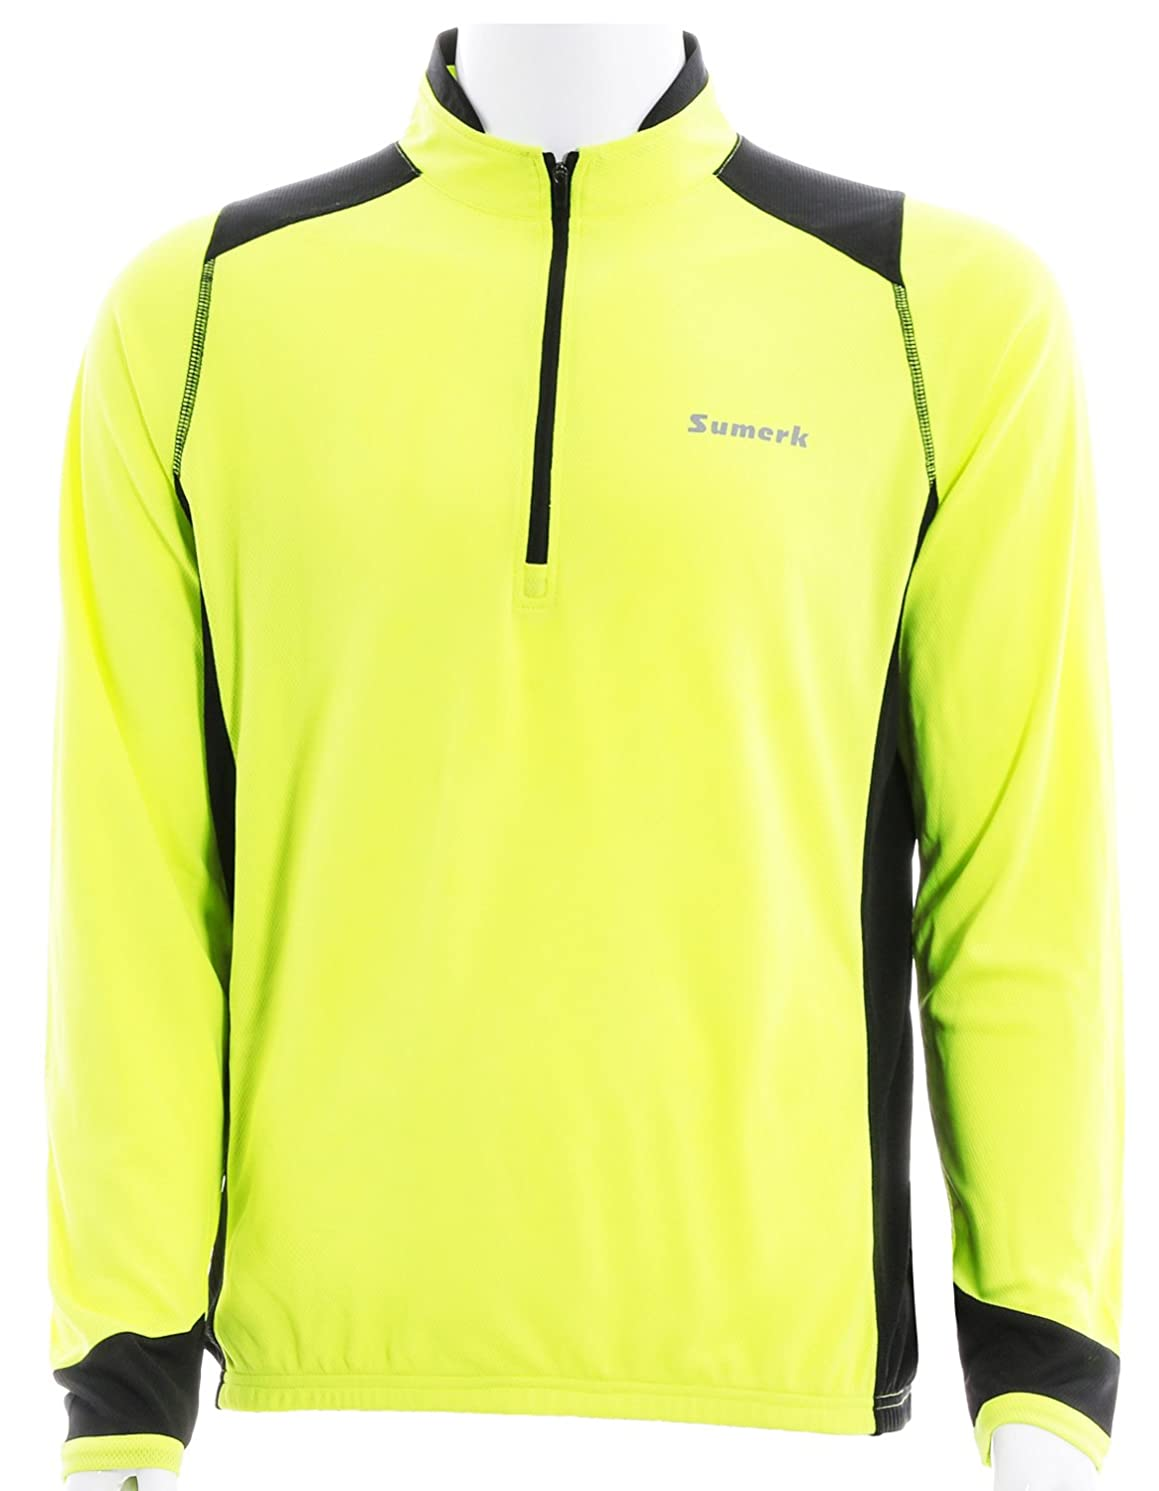 Sumerk Men's Long Sleeve Cycling Jersey with Pockets, Reflective Bike Biking Shirt - Breathable and Quick Dry